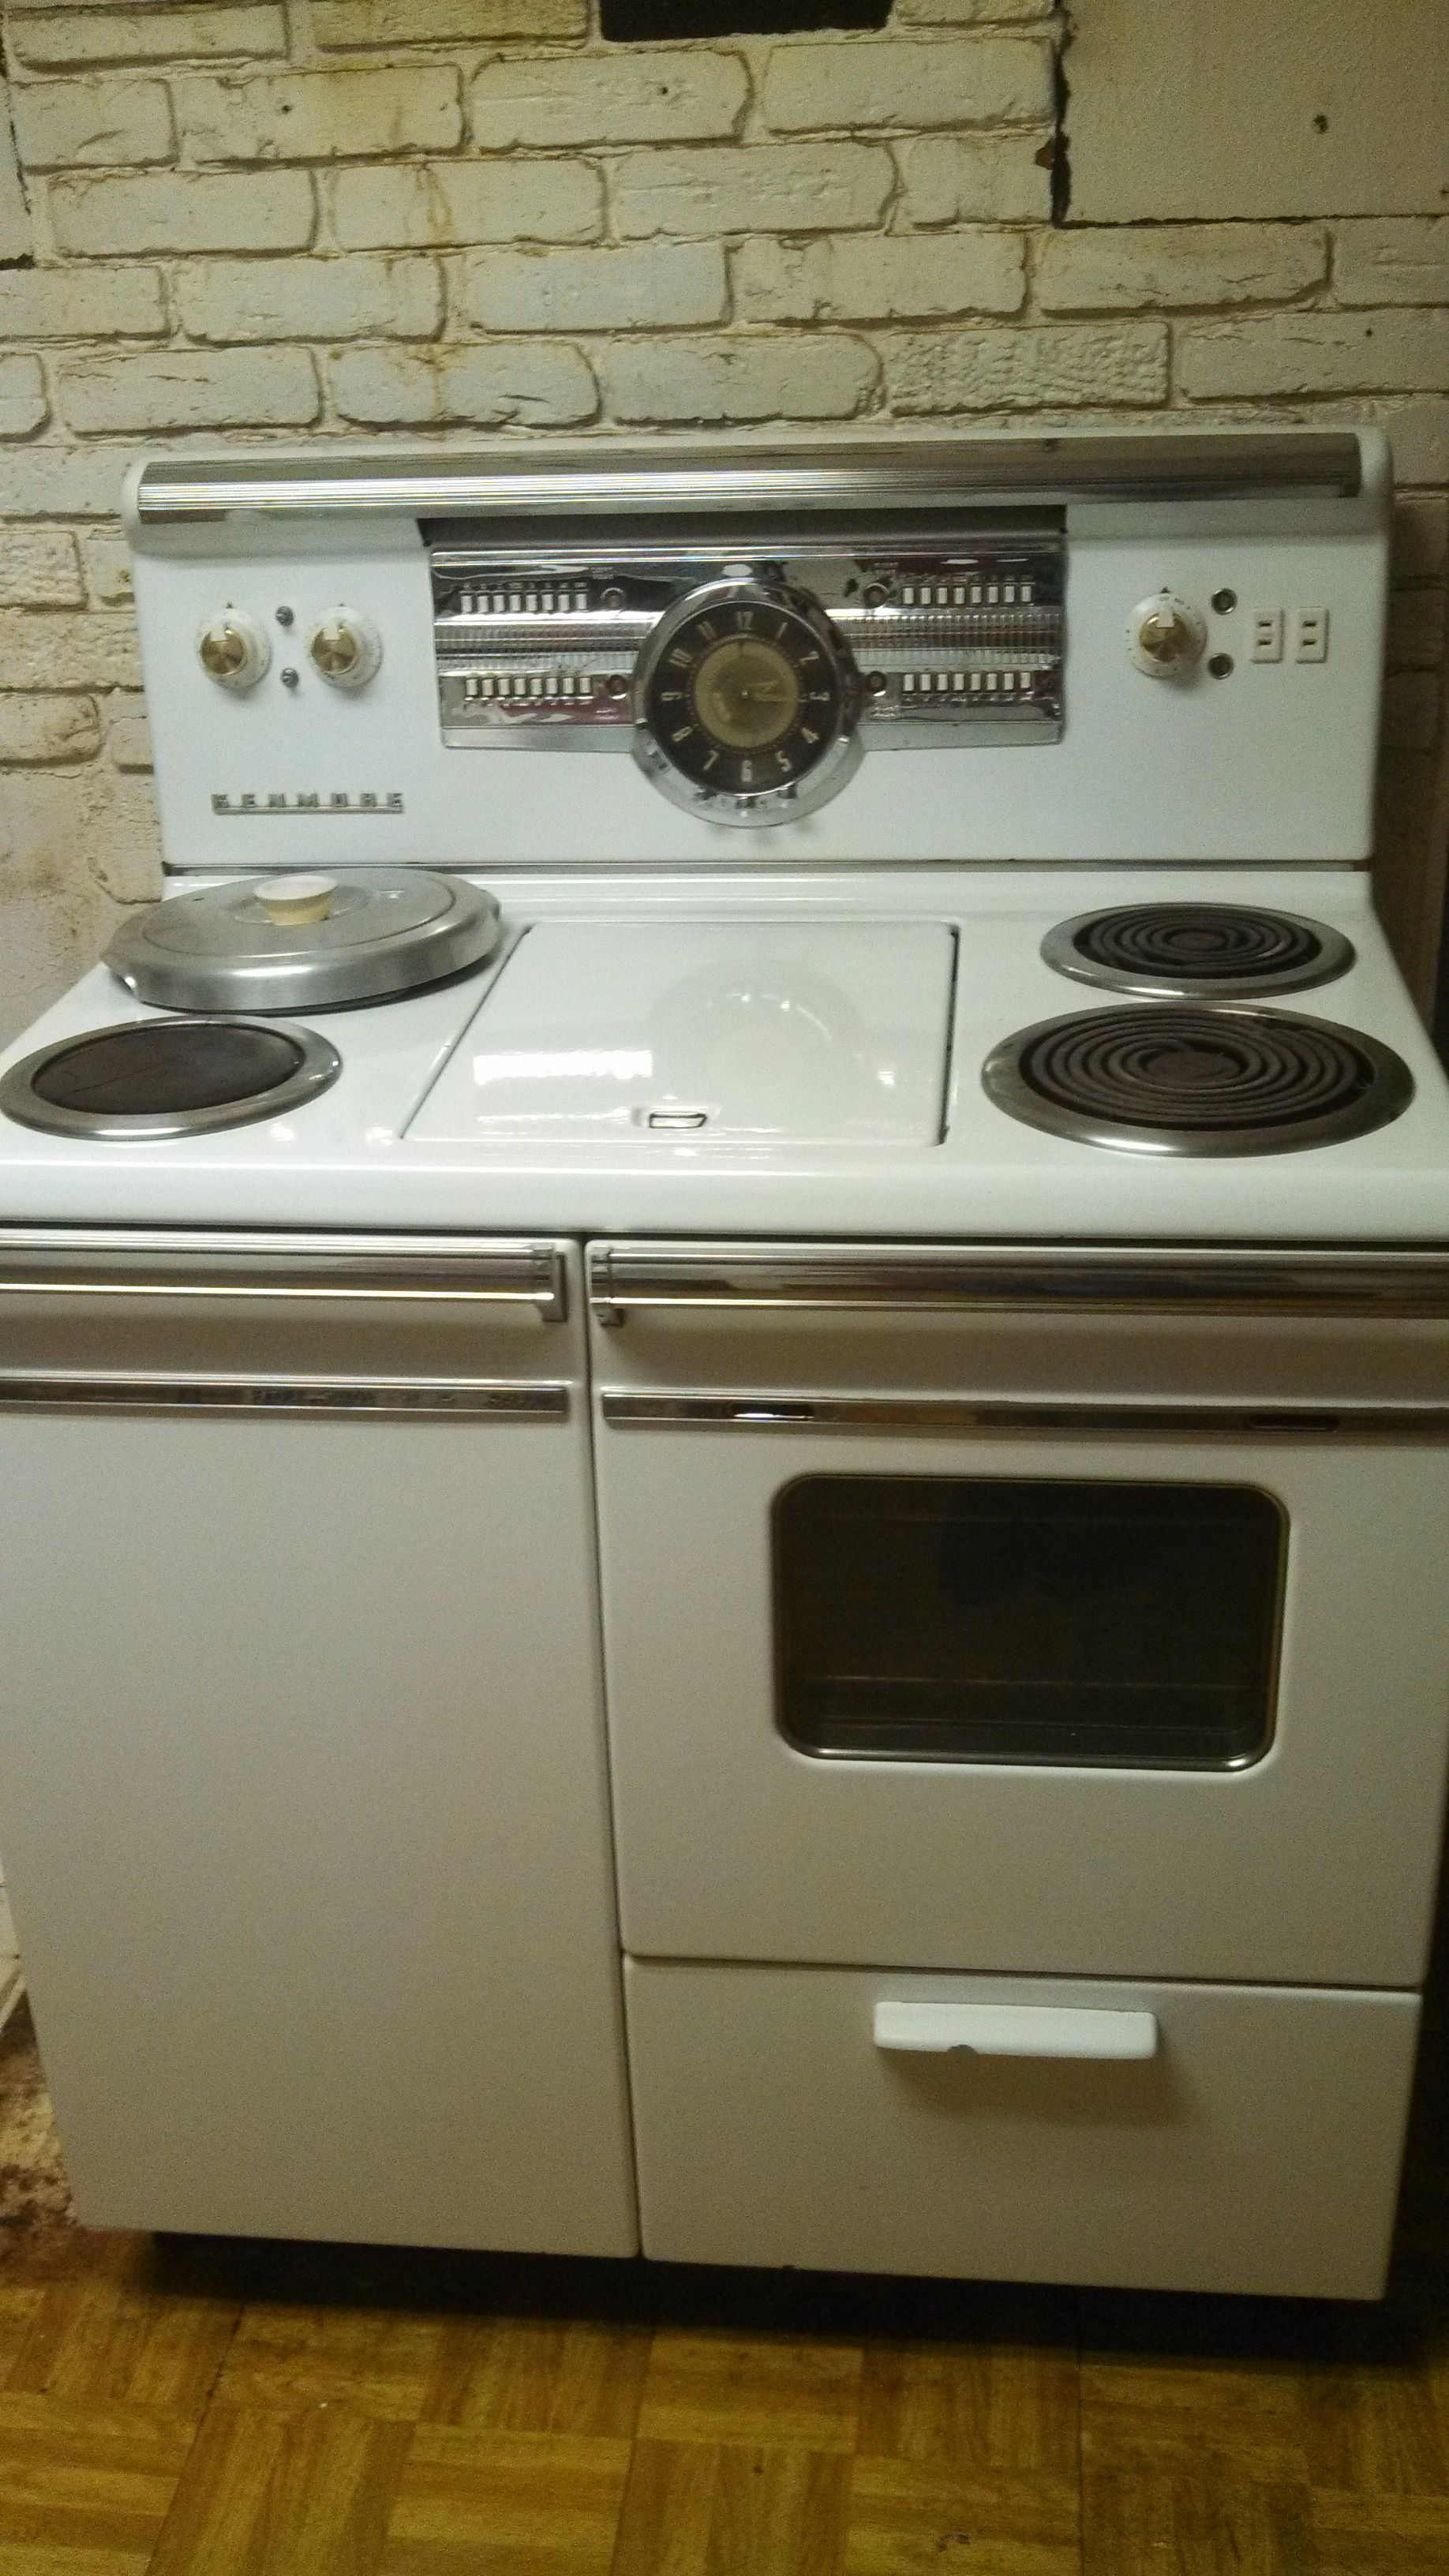 An amazing old Sears electric stove I got off craigslist for